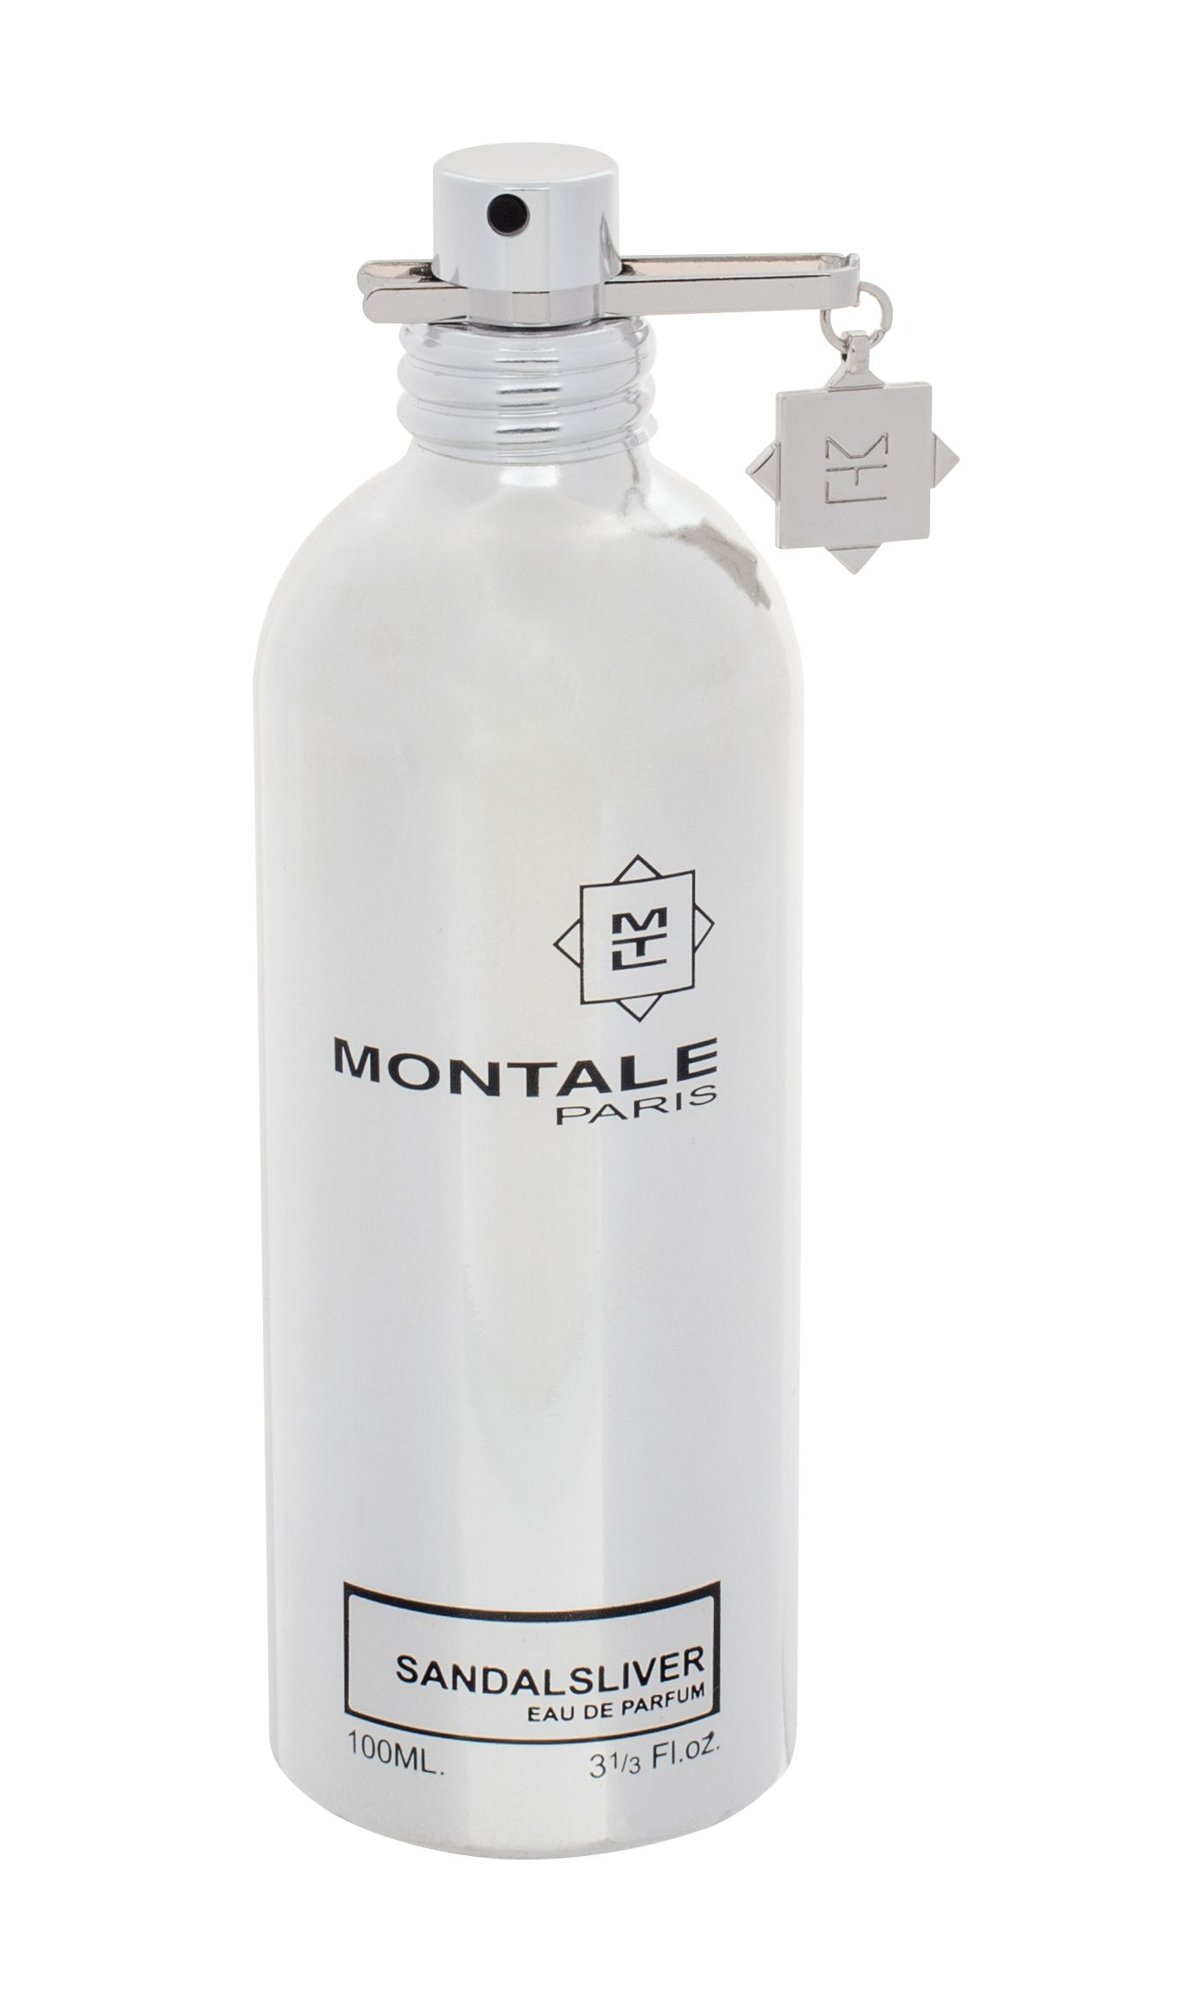 Montale Paris Sandal Sliver EDP 100ml